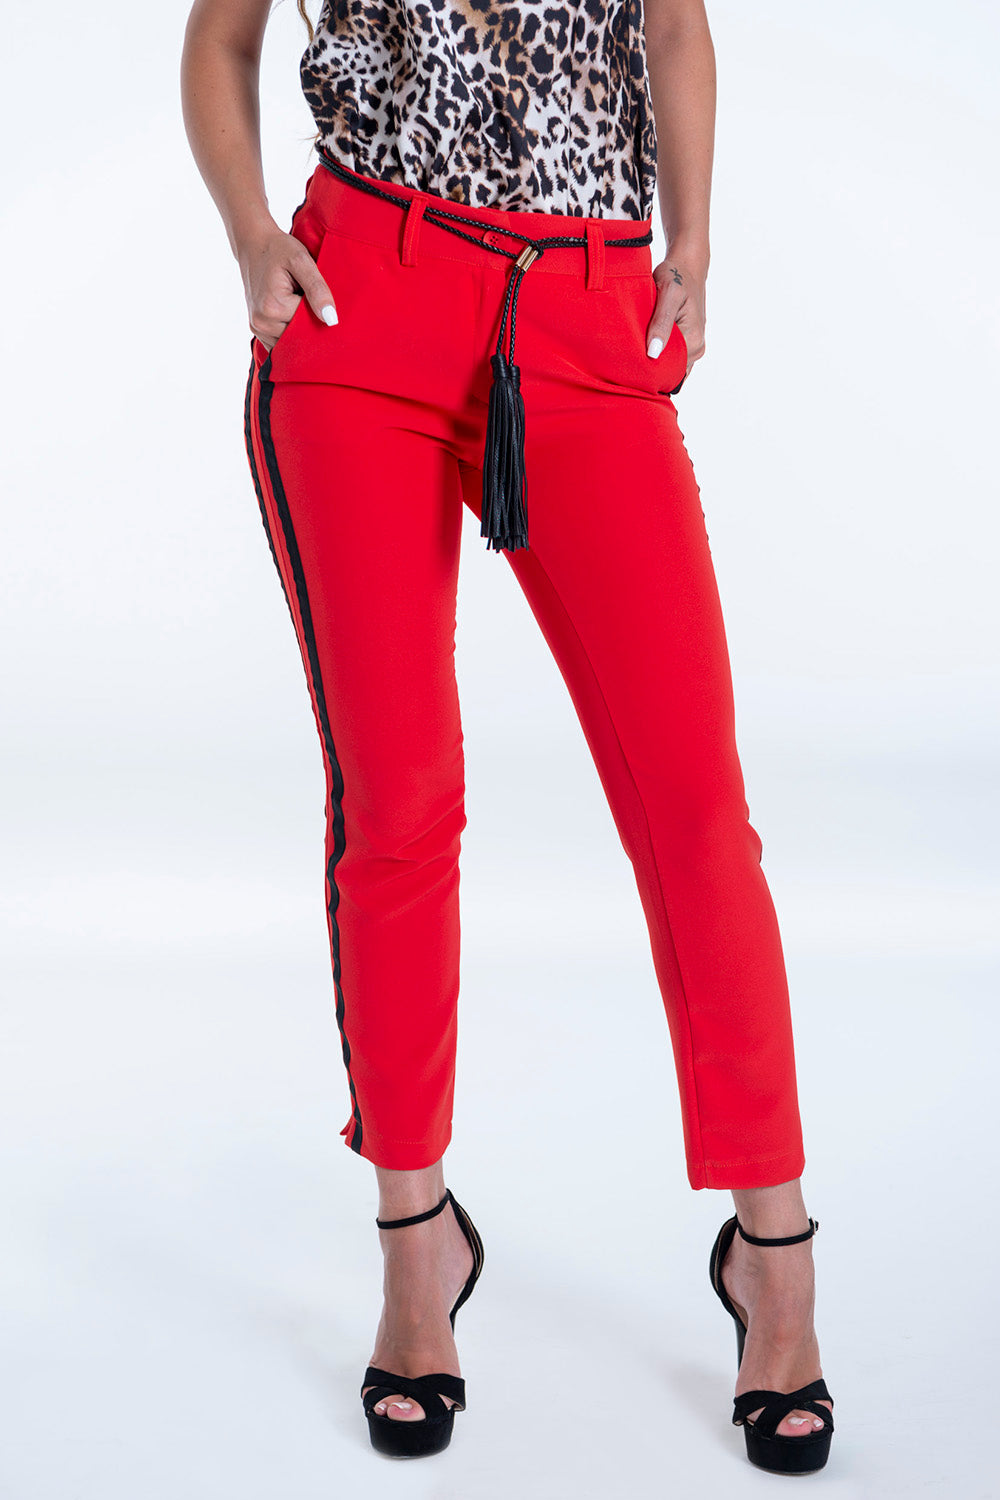 Red tailored trousers with black stripe